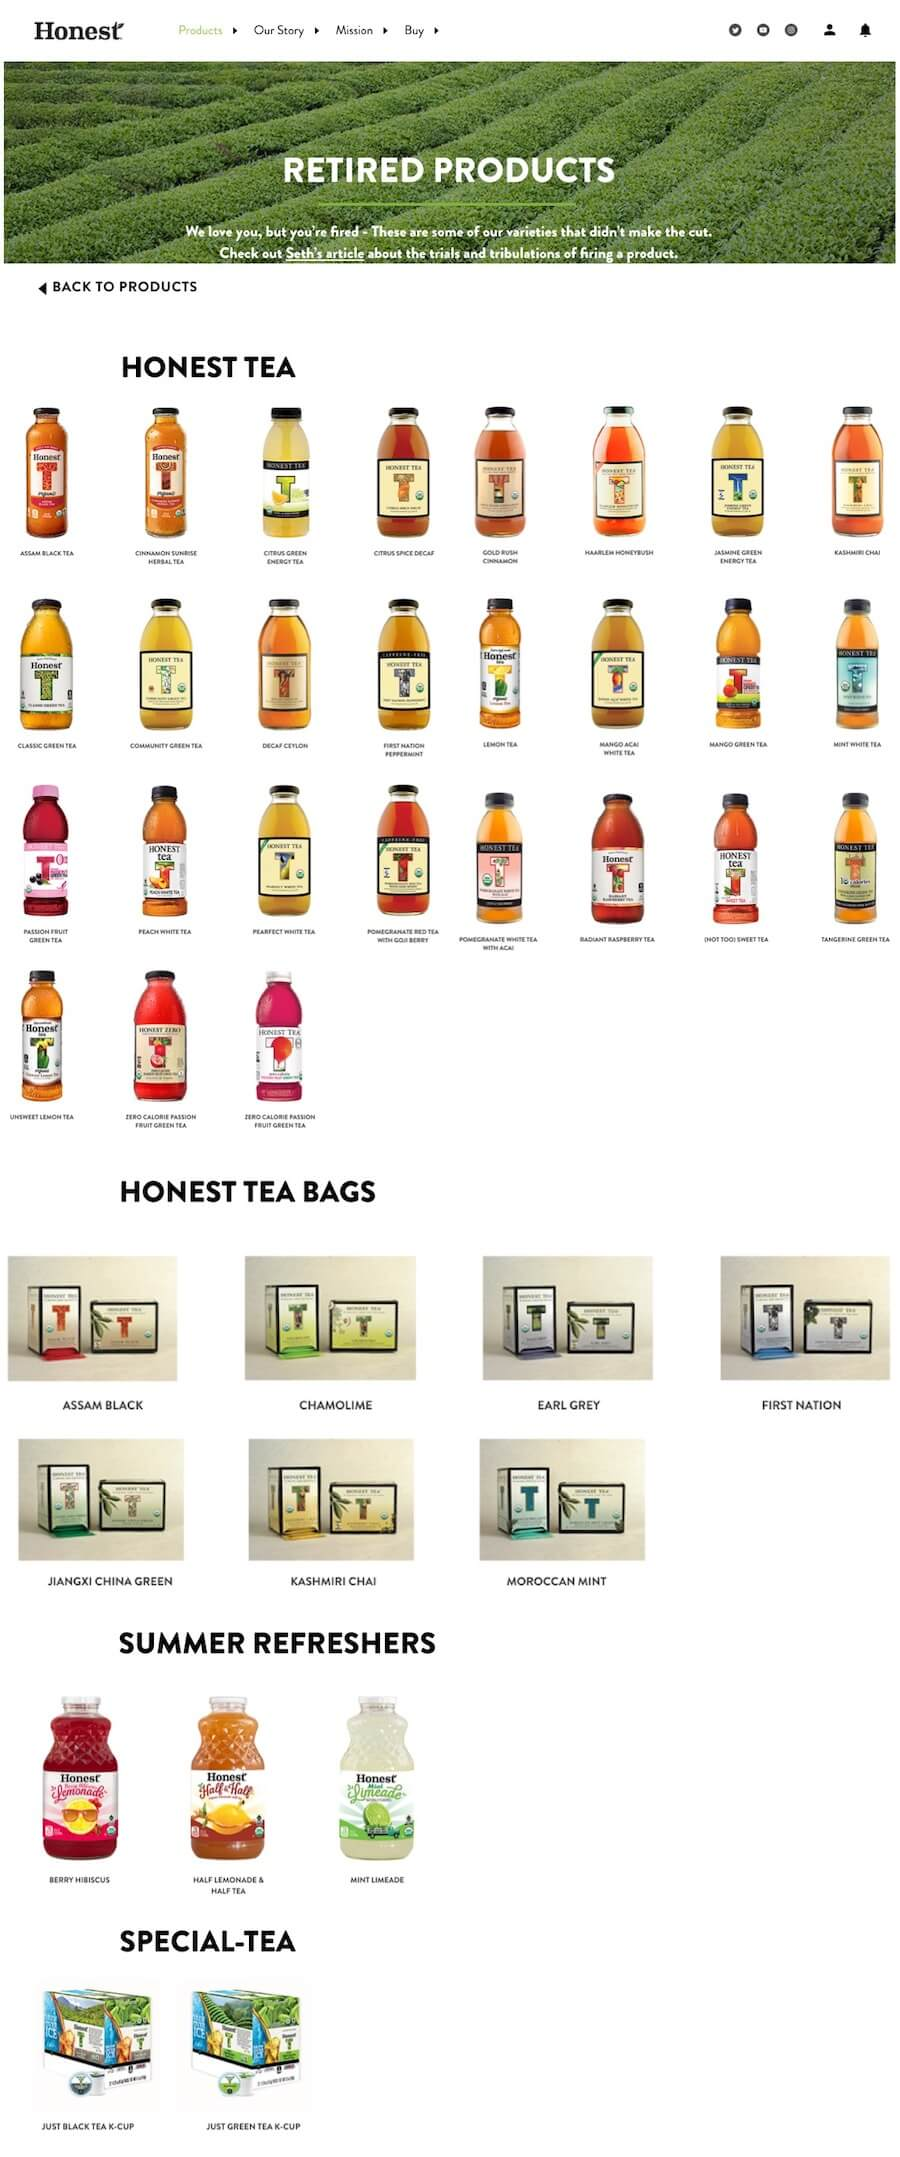 Honest Tea Retired Products